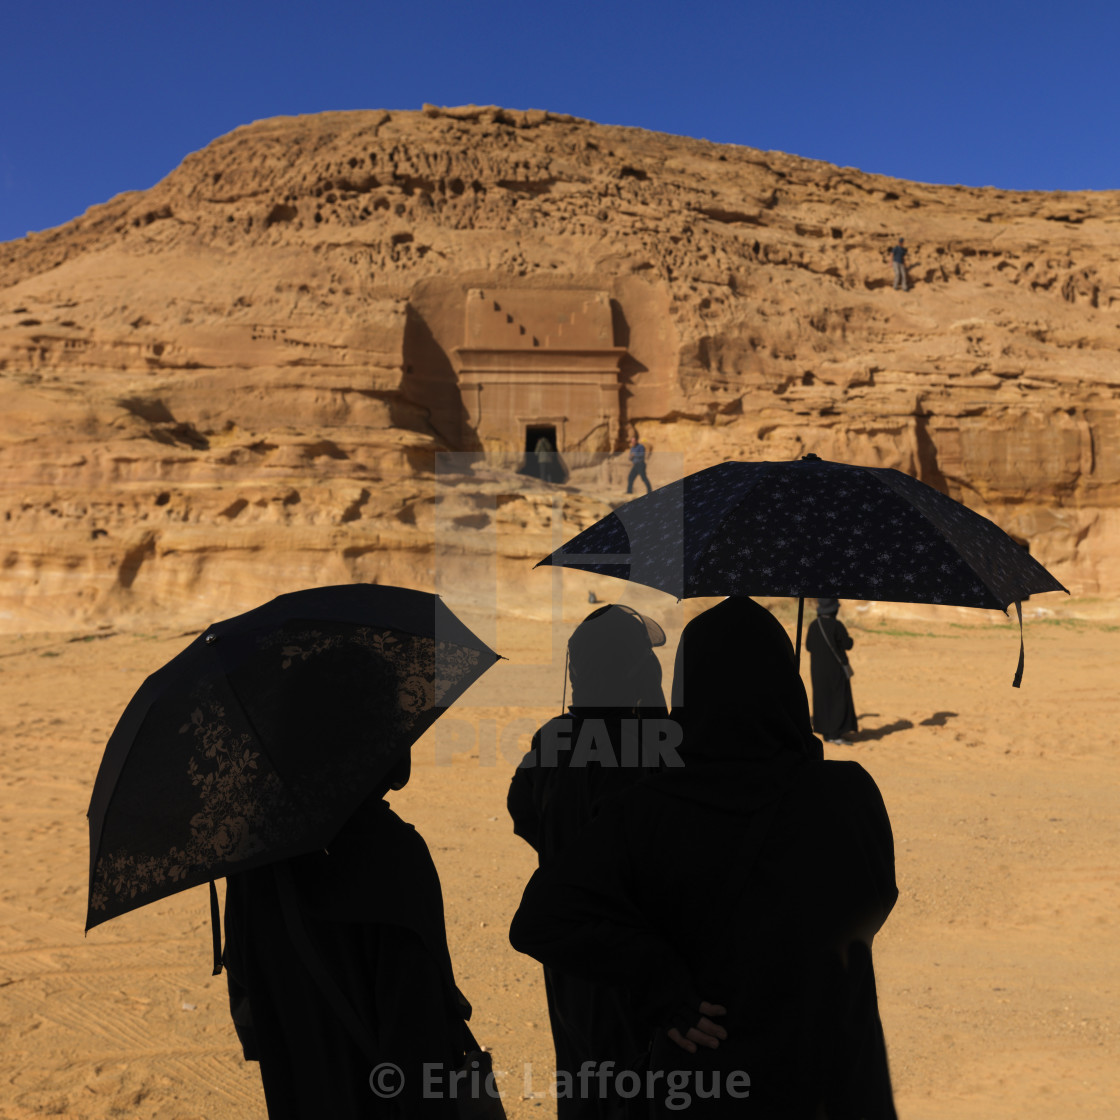 """Tourists in madain saleh archaeologic site, Saudi arabia"" stock image"